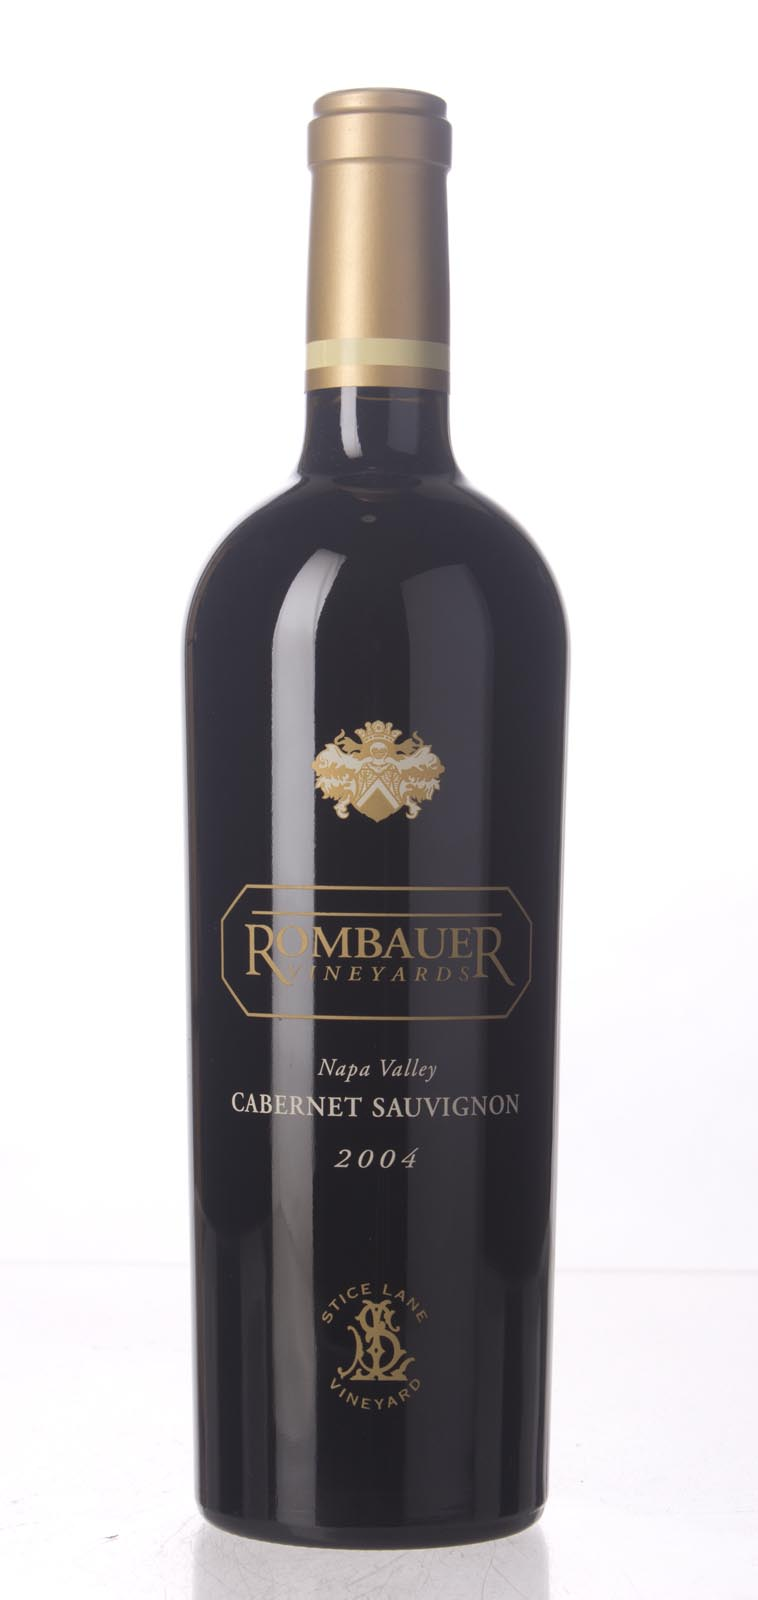 Rombauer Cabernet Sauvignon Stice Lane Vineyard 2004, 750mL () from The BPW - Merchants of rare and fine wines.